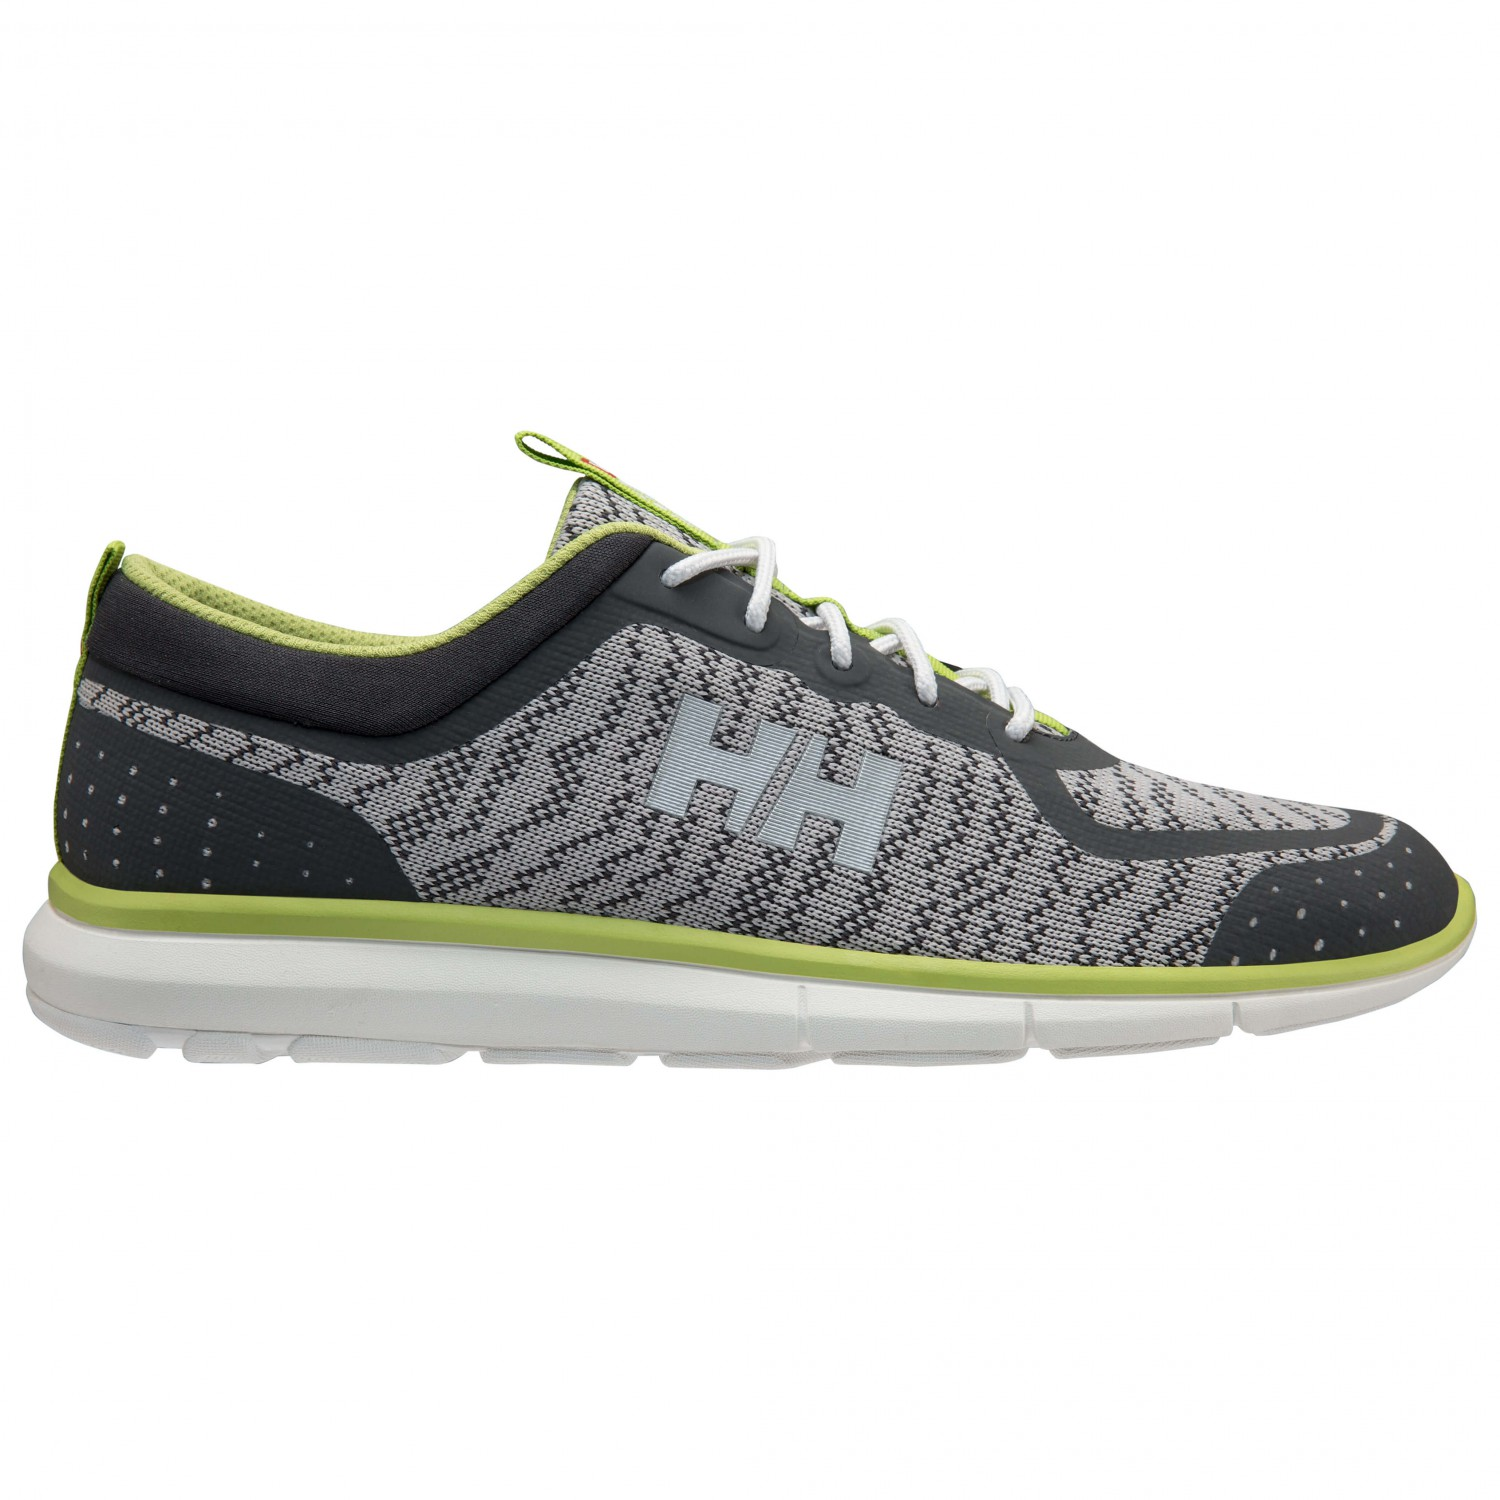 Helly Hansen - HP Shoreline F-1 - Sneaker White/Mid Grey/New Light Grey/Bright Chartreuse